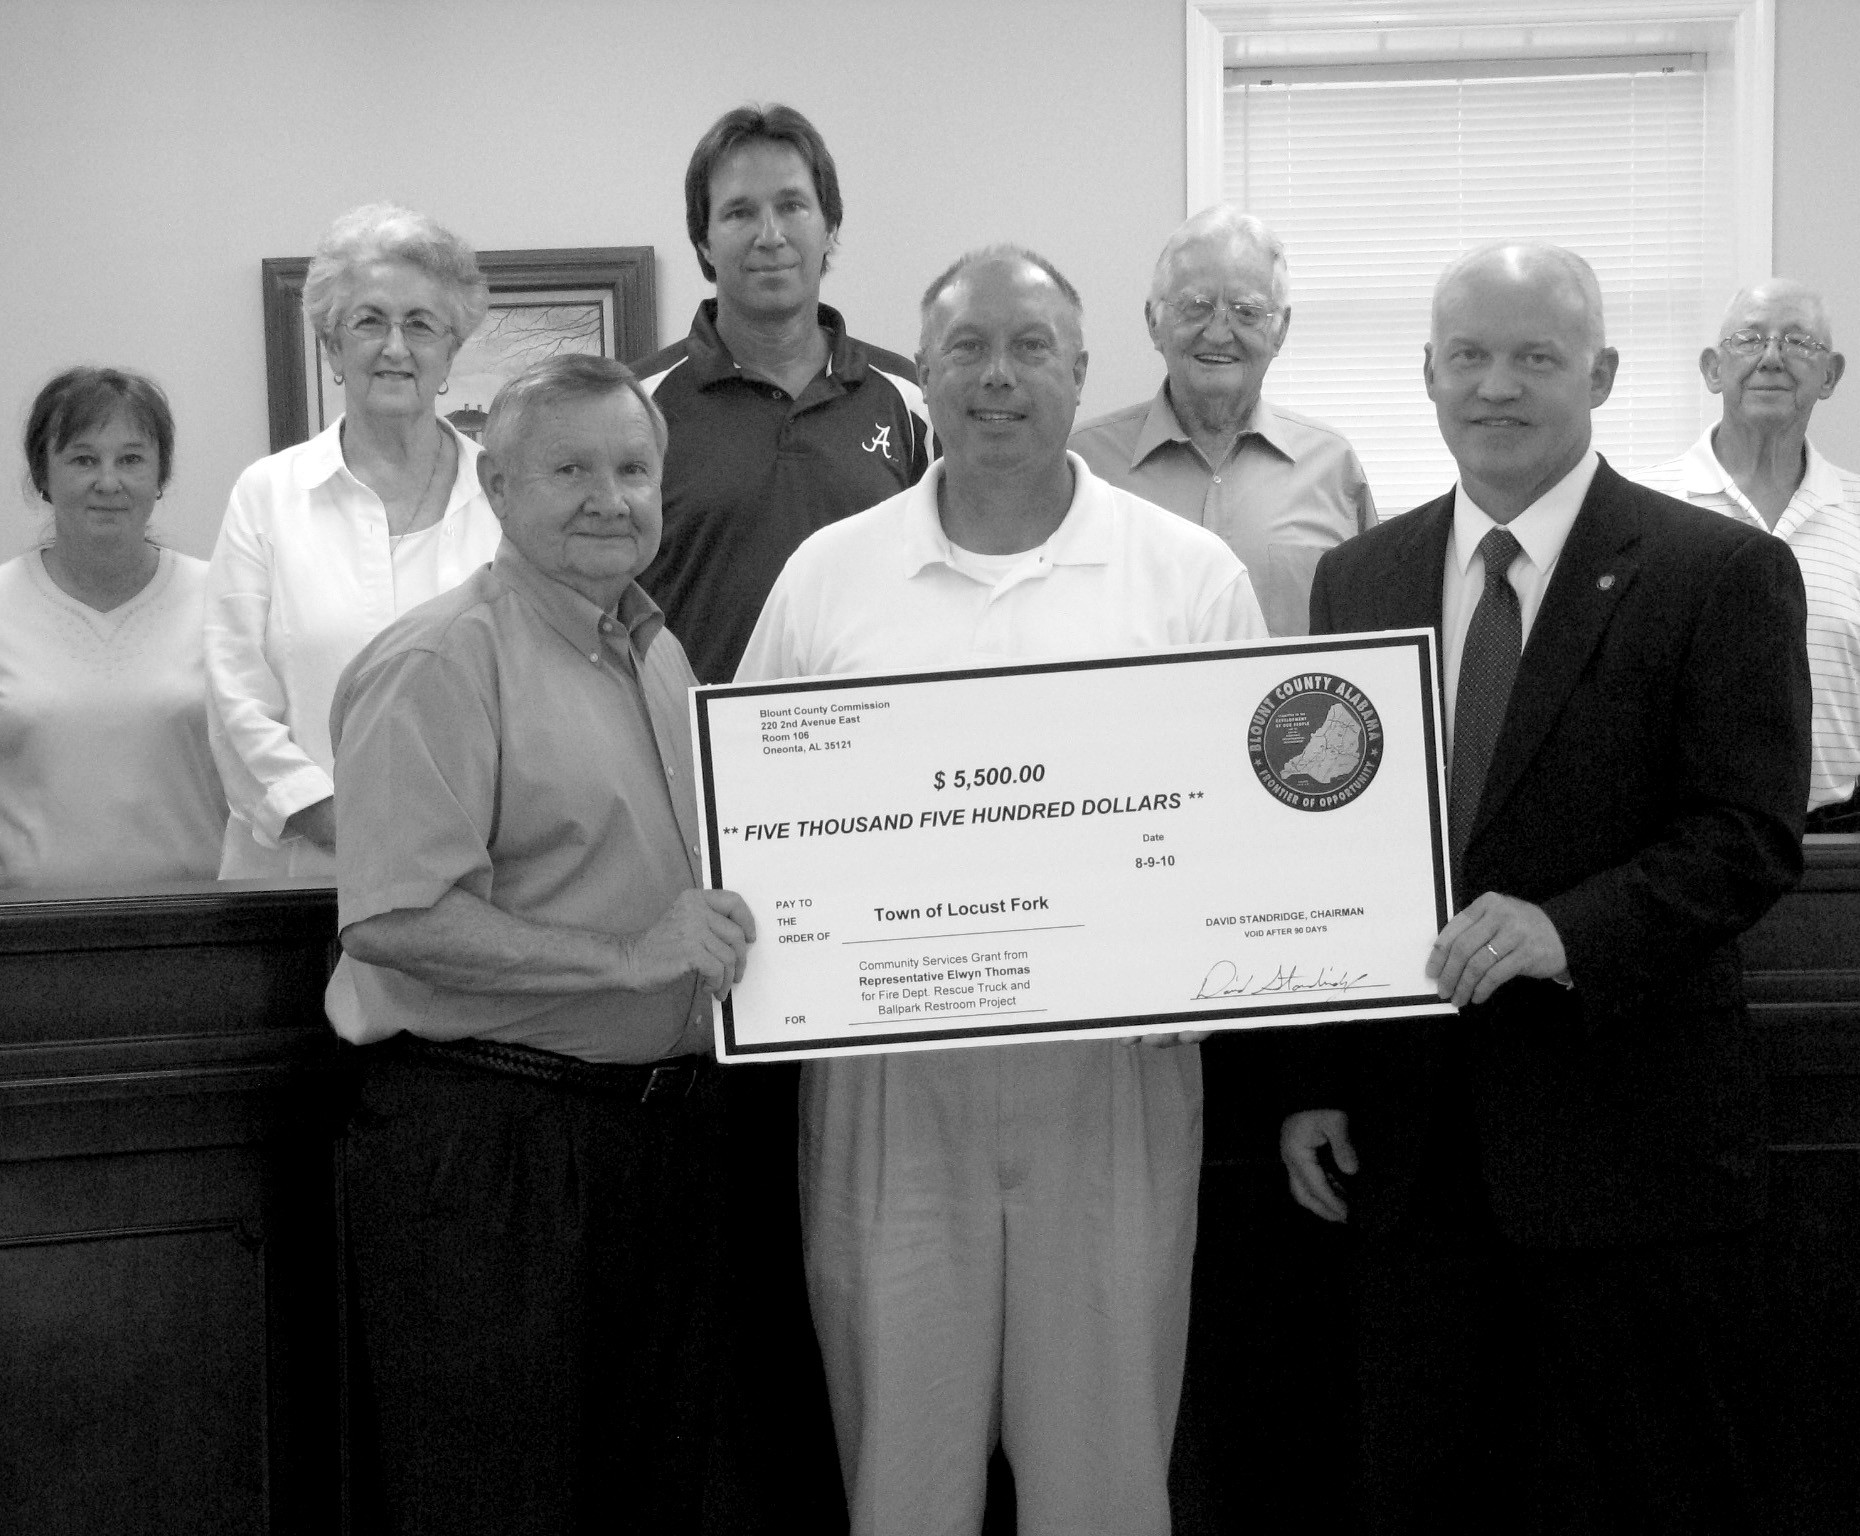 Locust Fork has been awarded two community services grants totaling $5500, presented Aug. 10 by Rep. Elwyn Thomas and County Commission Chairman David Standridge. A grant of $2500 will go toward the remodeling and new construction of the town park's restrooms. The one for $3000 will go to Locust Fork Volunteer Fire and Rescue and is dedicated to the purchase of a new rescue vehicle. Shown above are (back from left) Tammy Riebe, town clerk; councilors Sarah Holt, Greg Sherrer, Charles Gilliland, Robert Chamblee; (front) Thomas, Mayor Joseph B. Hughes, and Standridge. – Tanna Friday